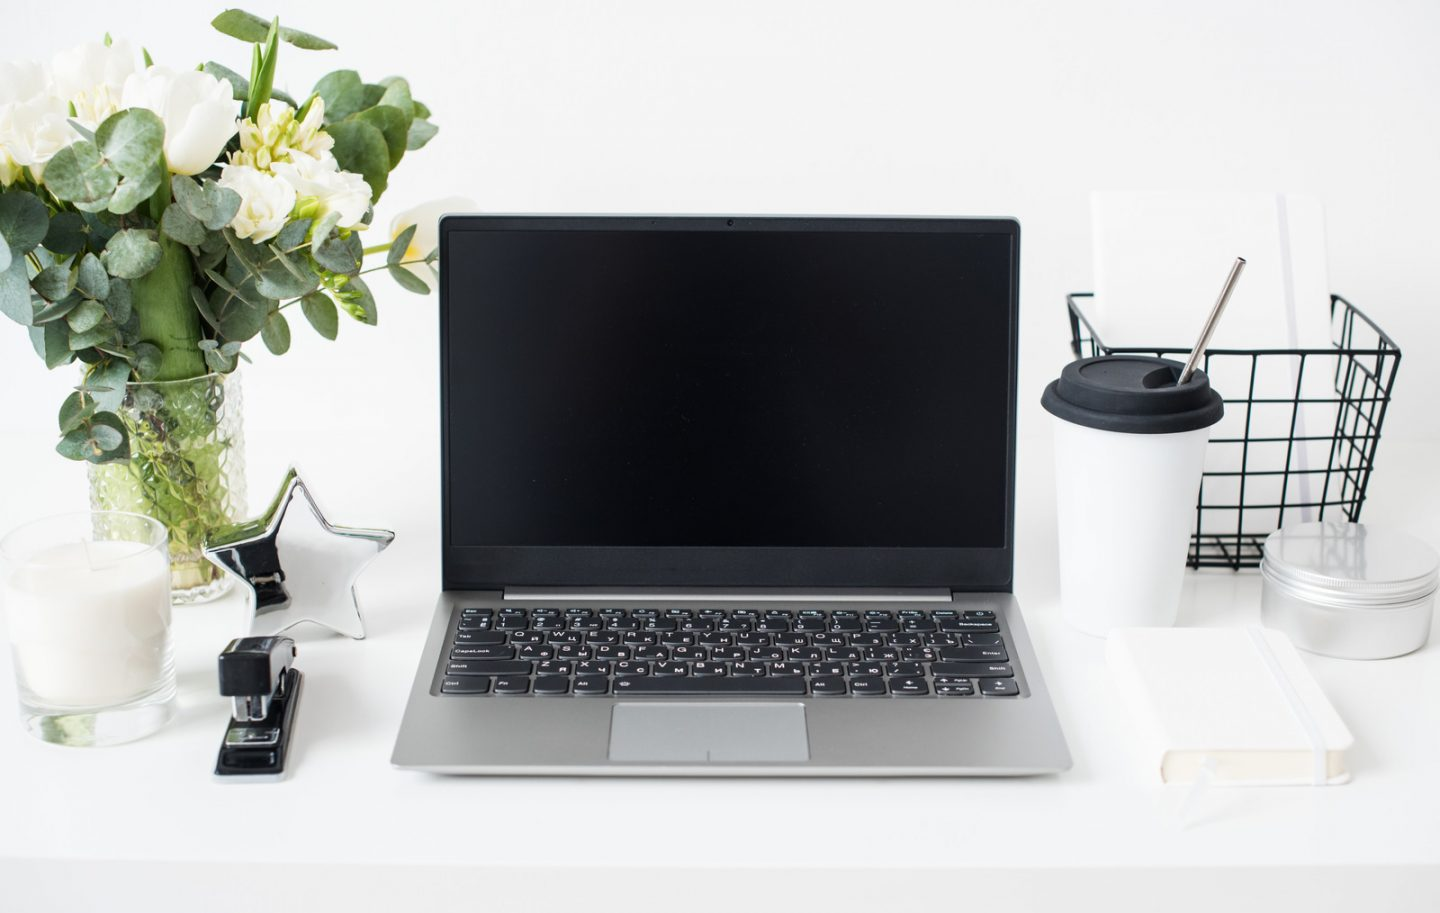 Hipster bloggers work place, laptop and flowers on white tabletop, trendy office decoration